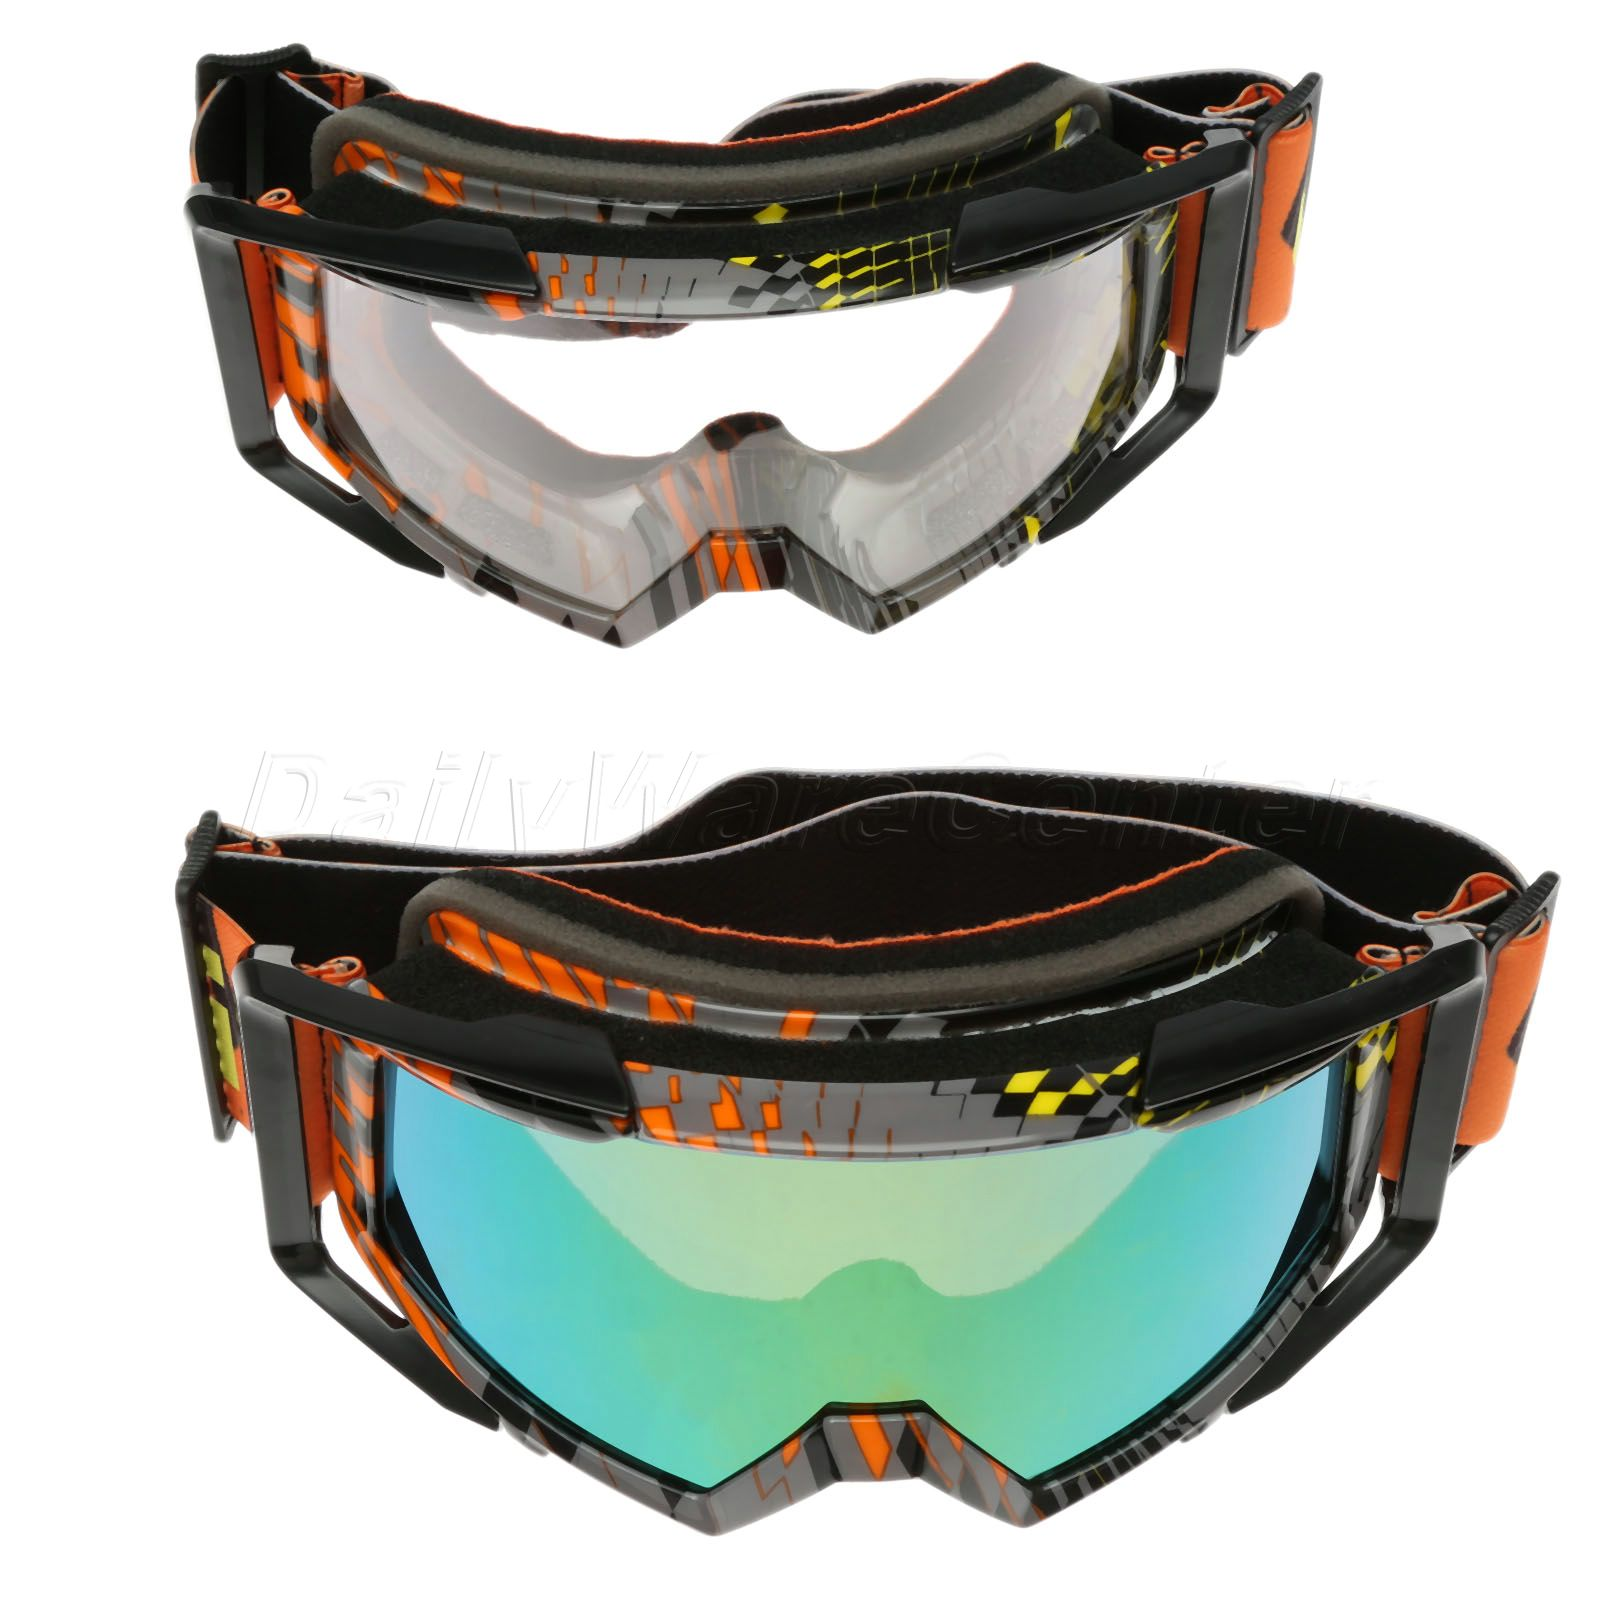 UV Protection Motorcycle Goggles Motocross Glasses Skiing Skate Flexible Sunglasses Cycling Off-Road Eyewear Bike ATV Glasses